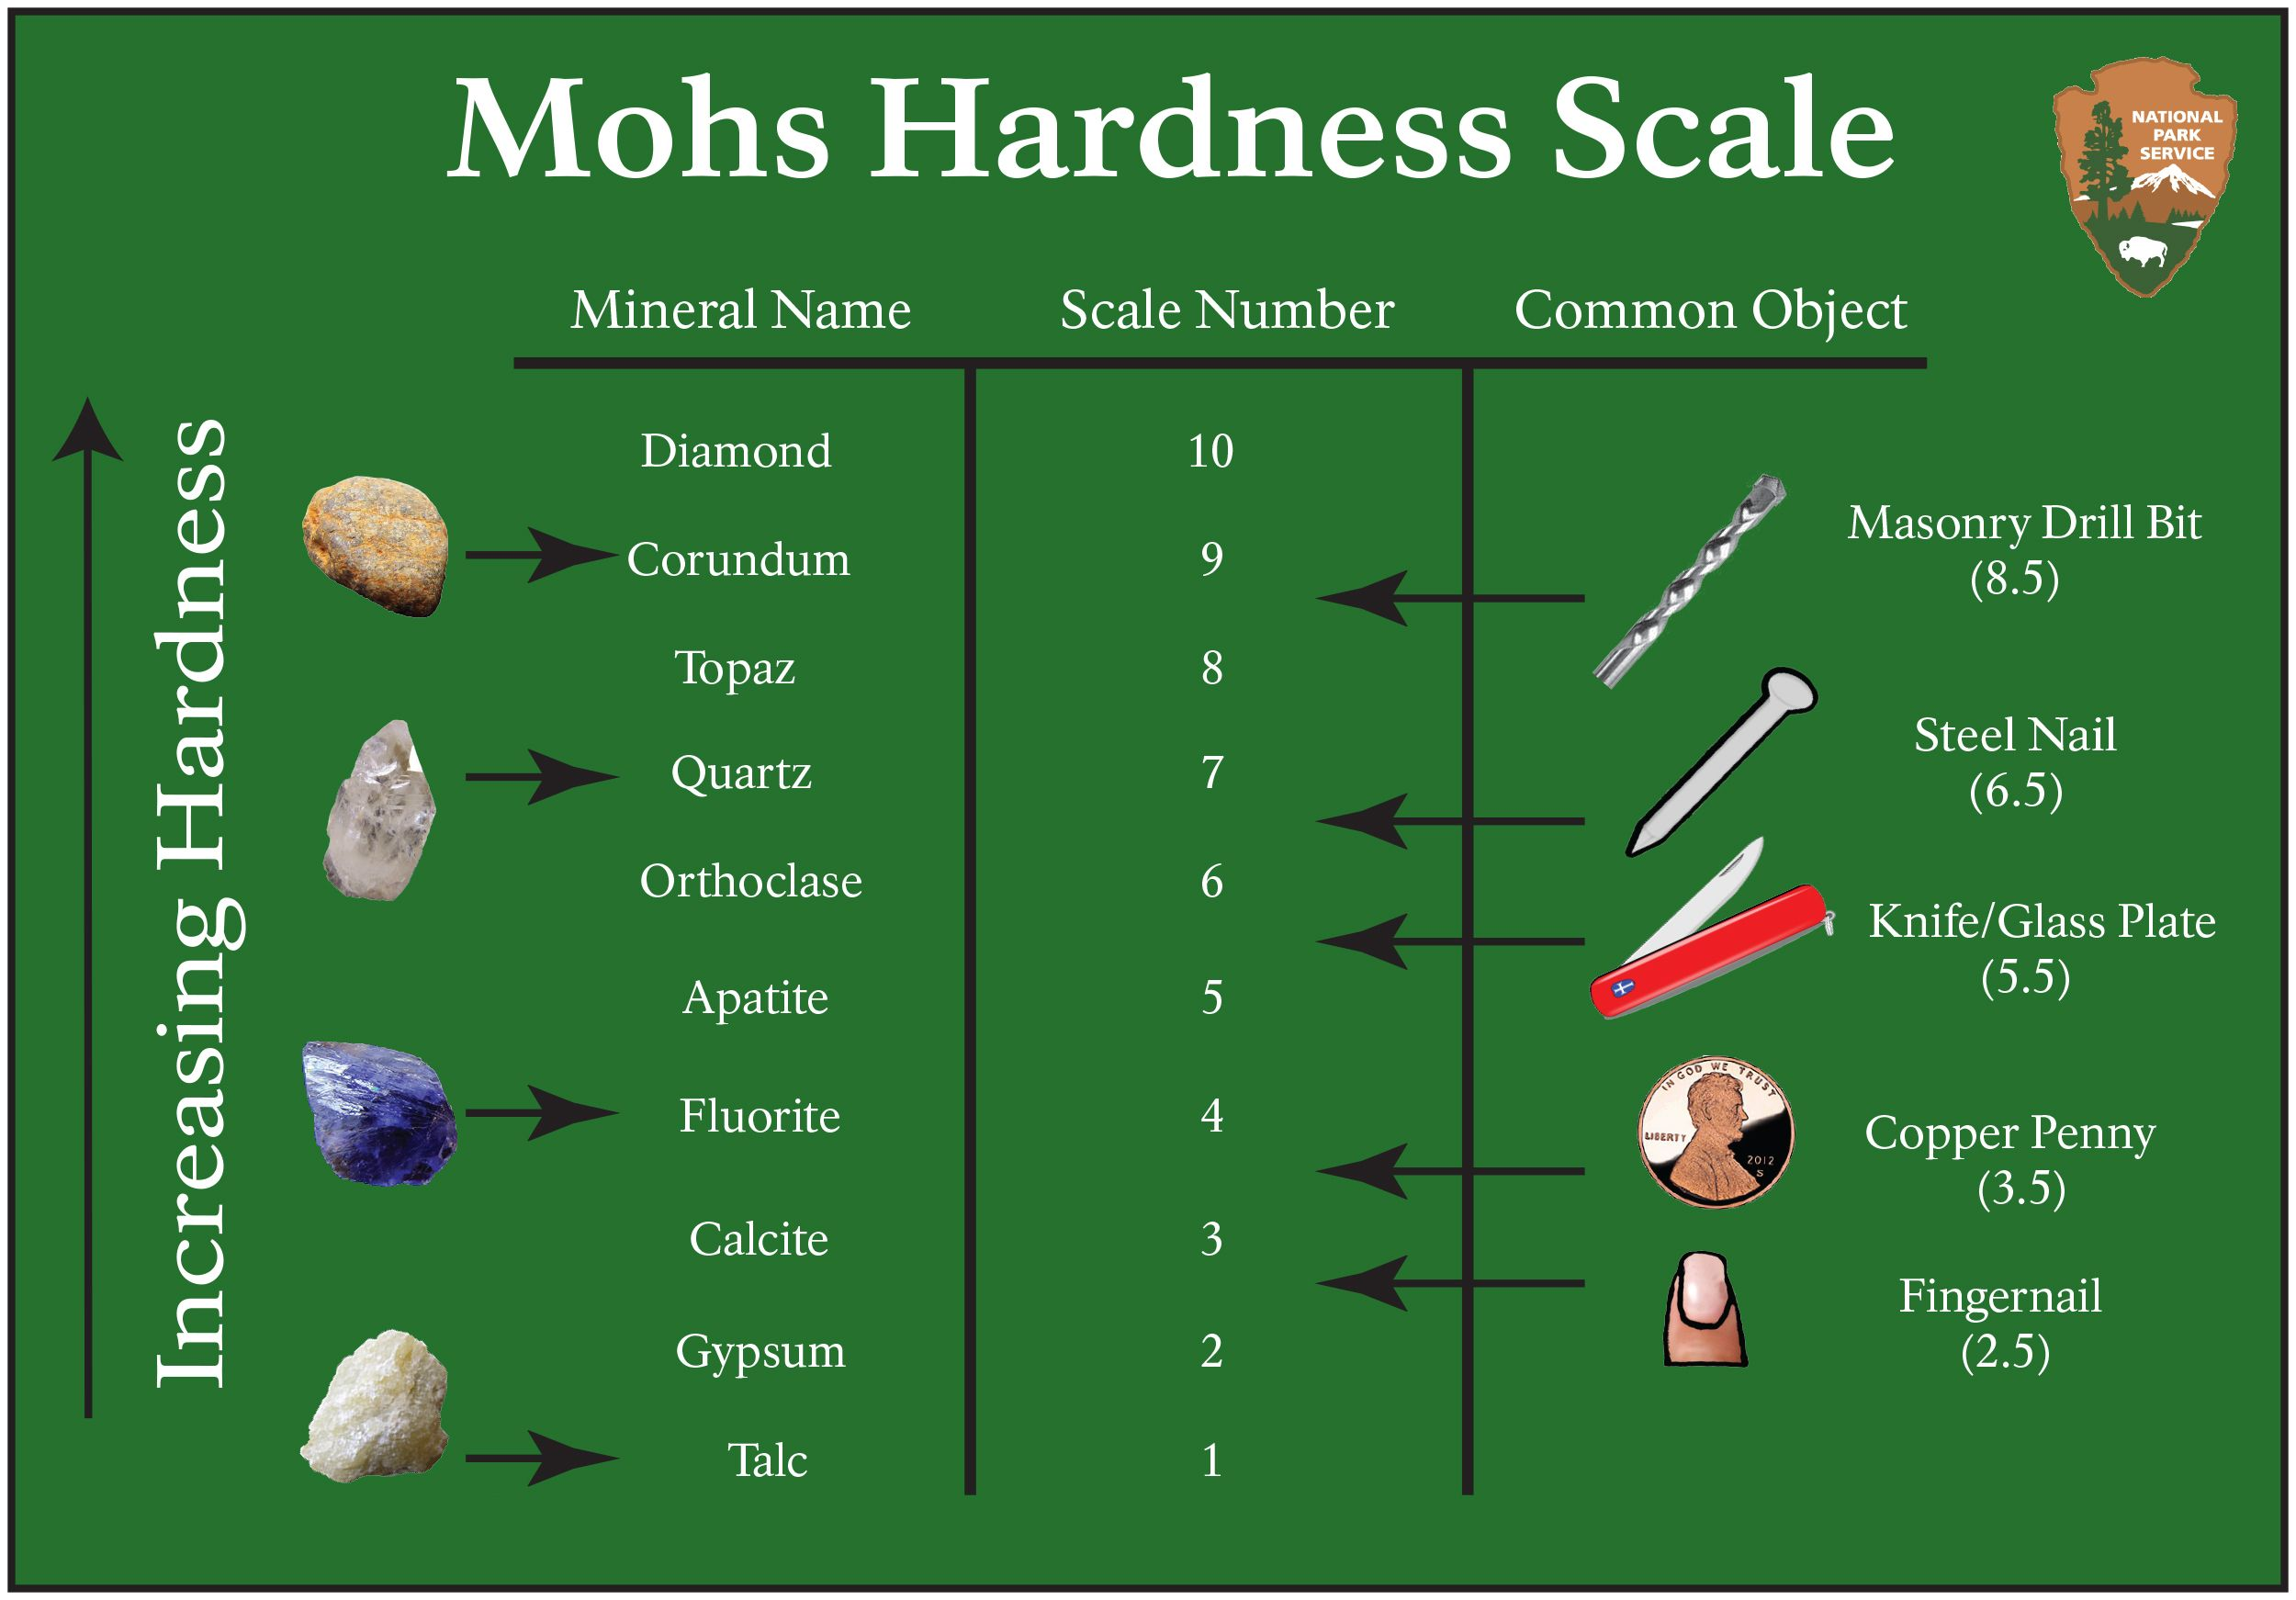 Mohs Hardness Scale Chalcedony Gemstone Is In The Quartz Family Having Hardness Level 7 Which